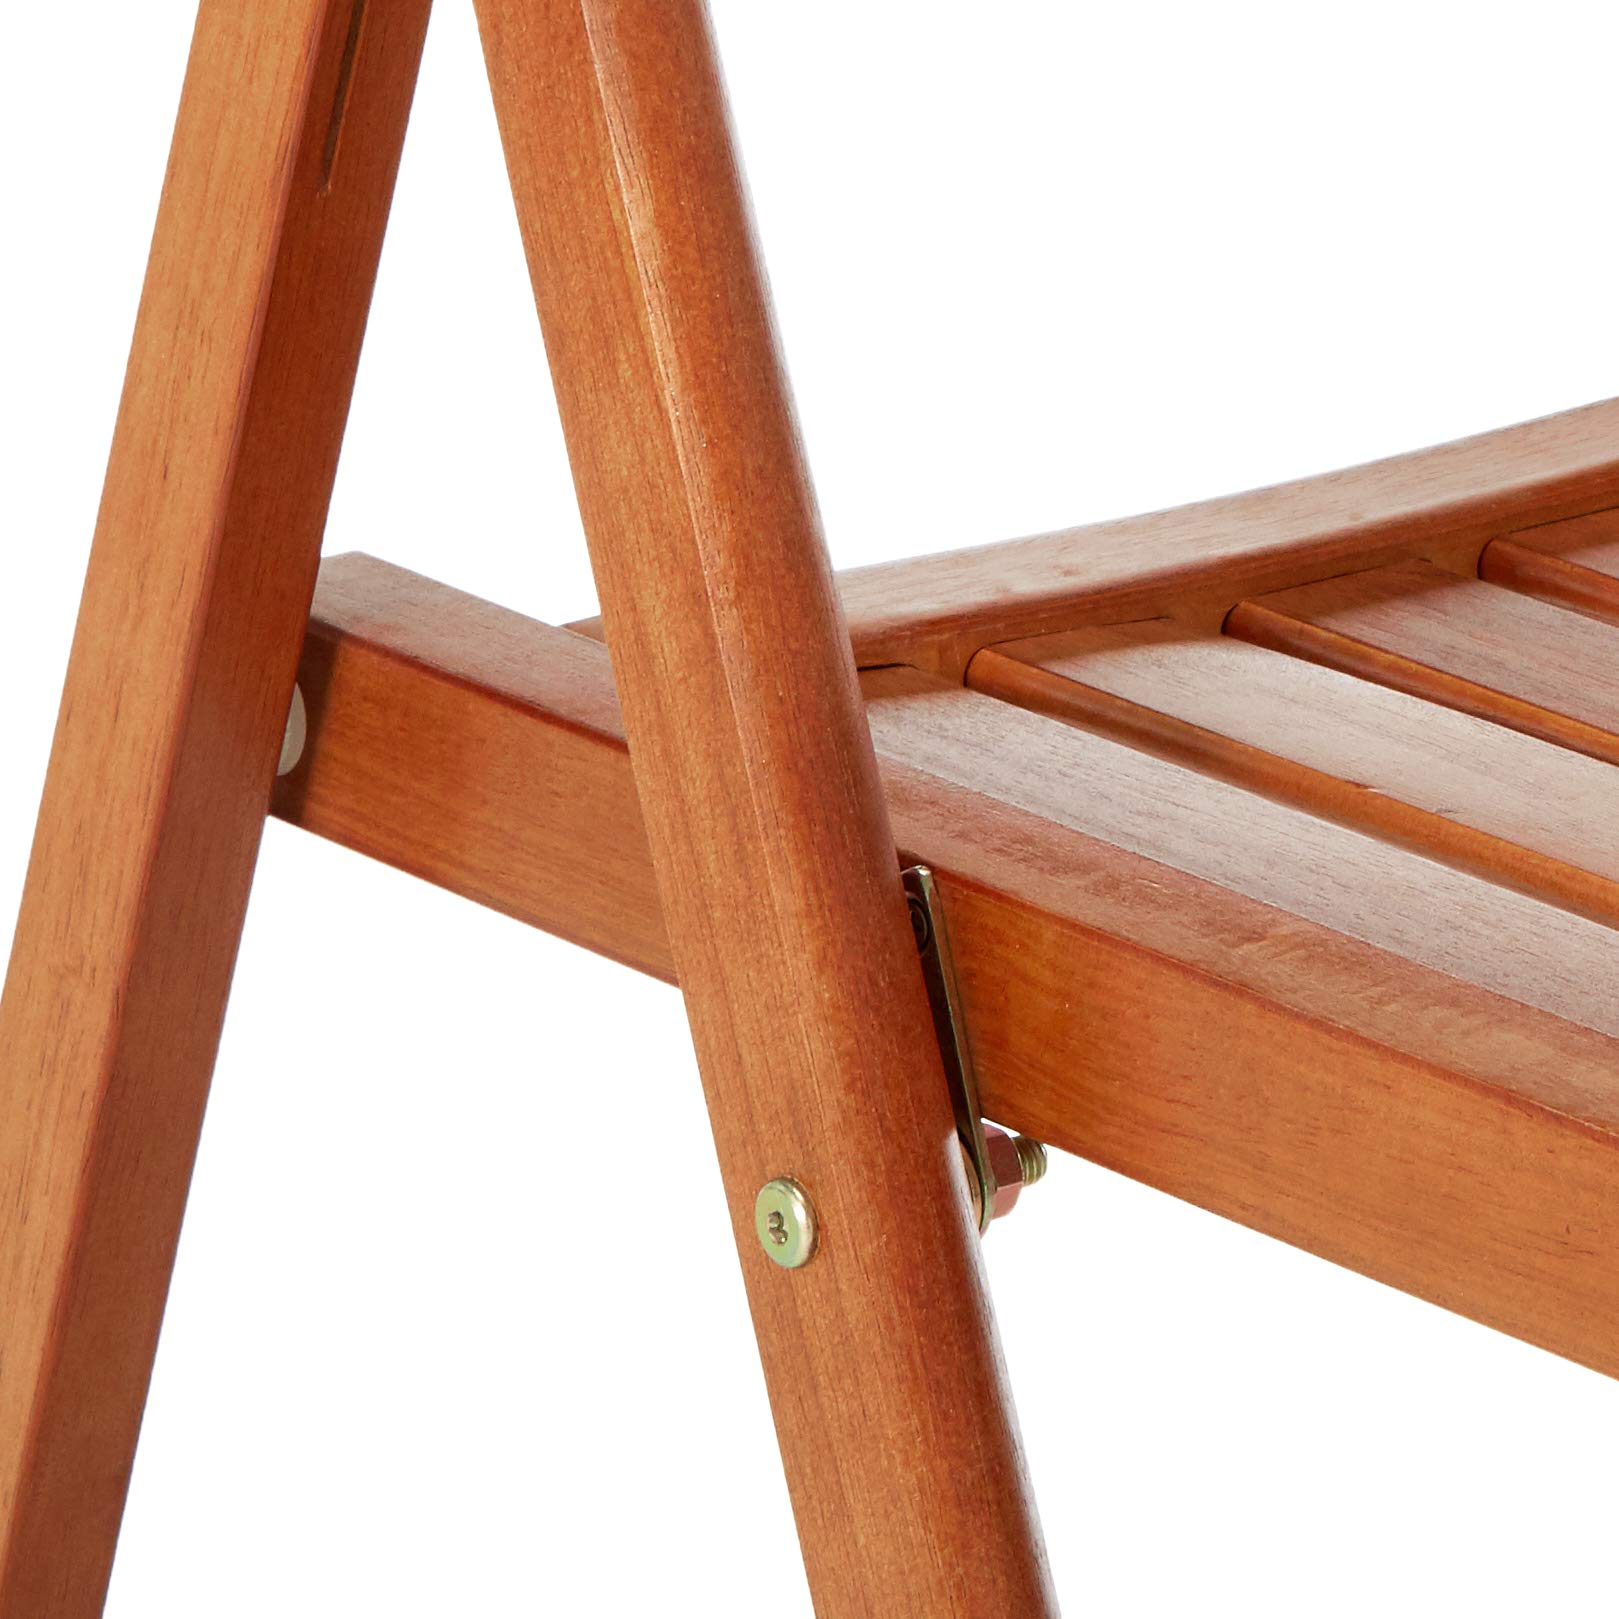 Winsome Wood 33415 Robin 4-PC Folding Set Teak Chair, by Winsome Wood (Image #4)